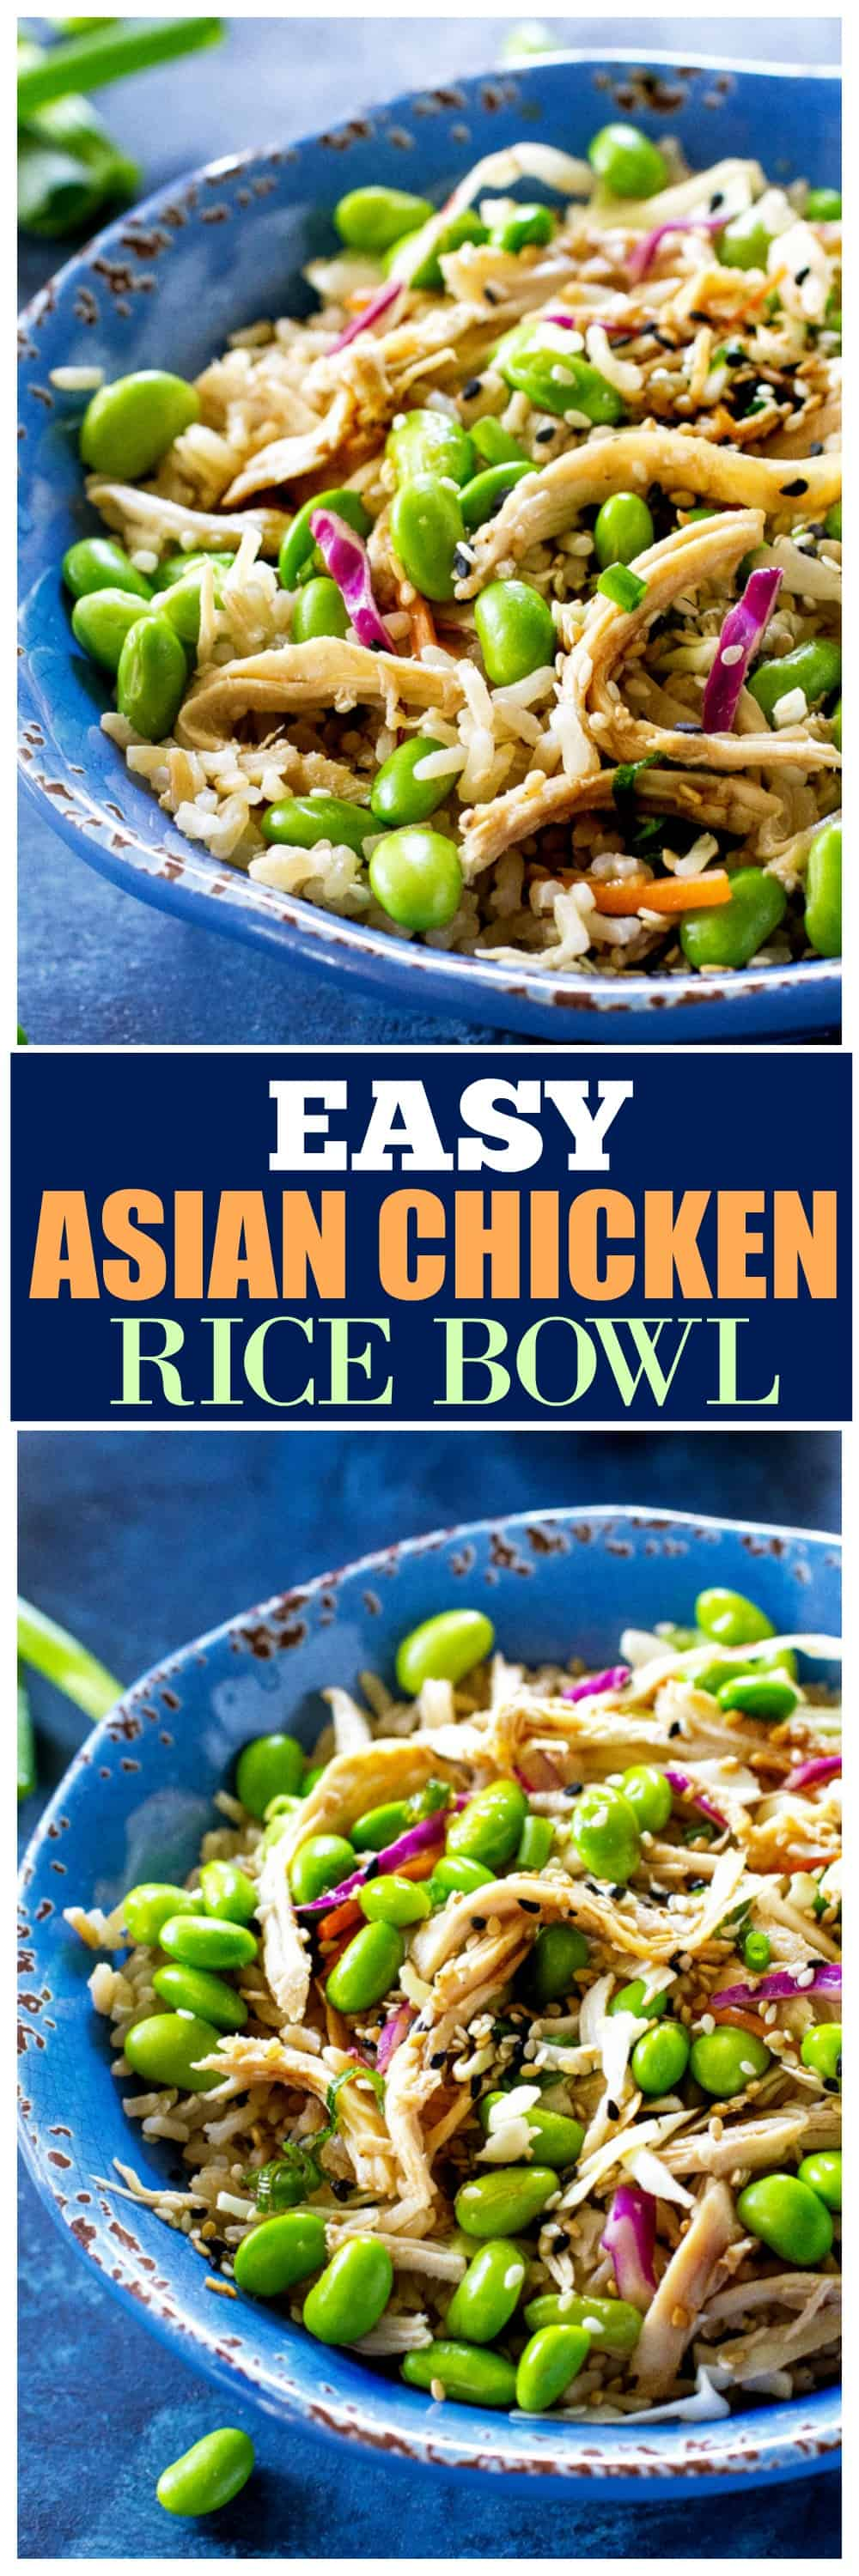 Easy Asian Chicken Rice Bowl